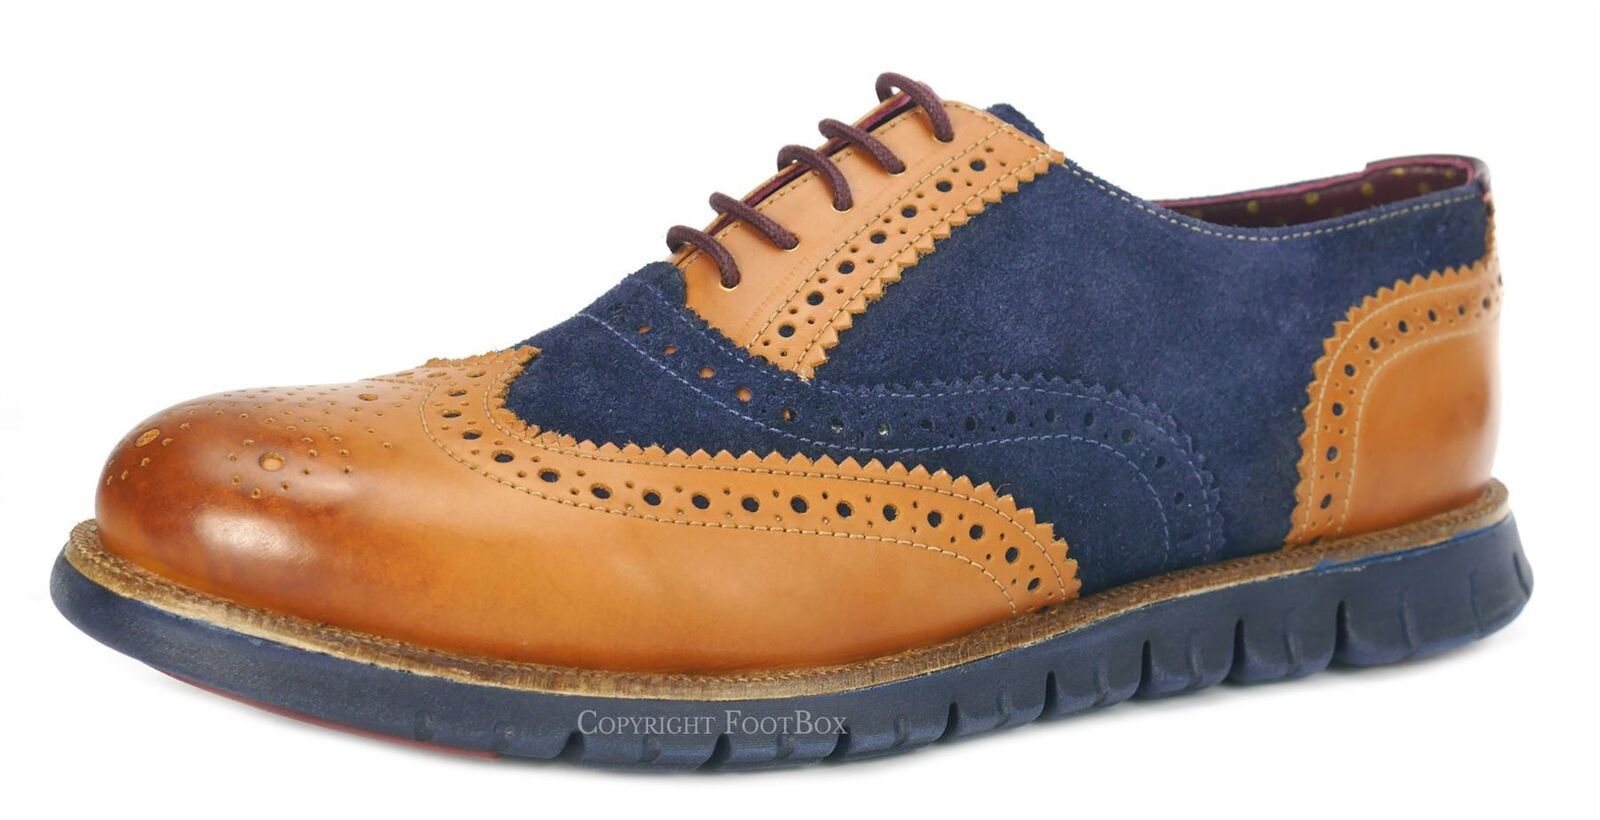 London Brogues Gatz Mens Brogues Oxford Ultra Lightweight schuhe Tan   Navy Suede